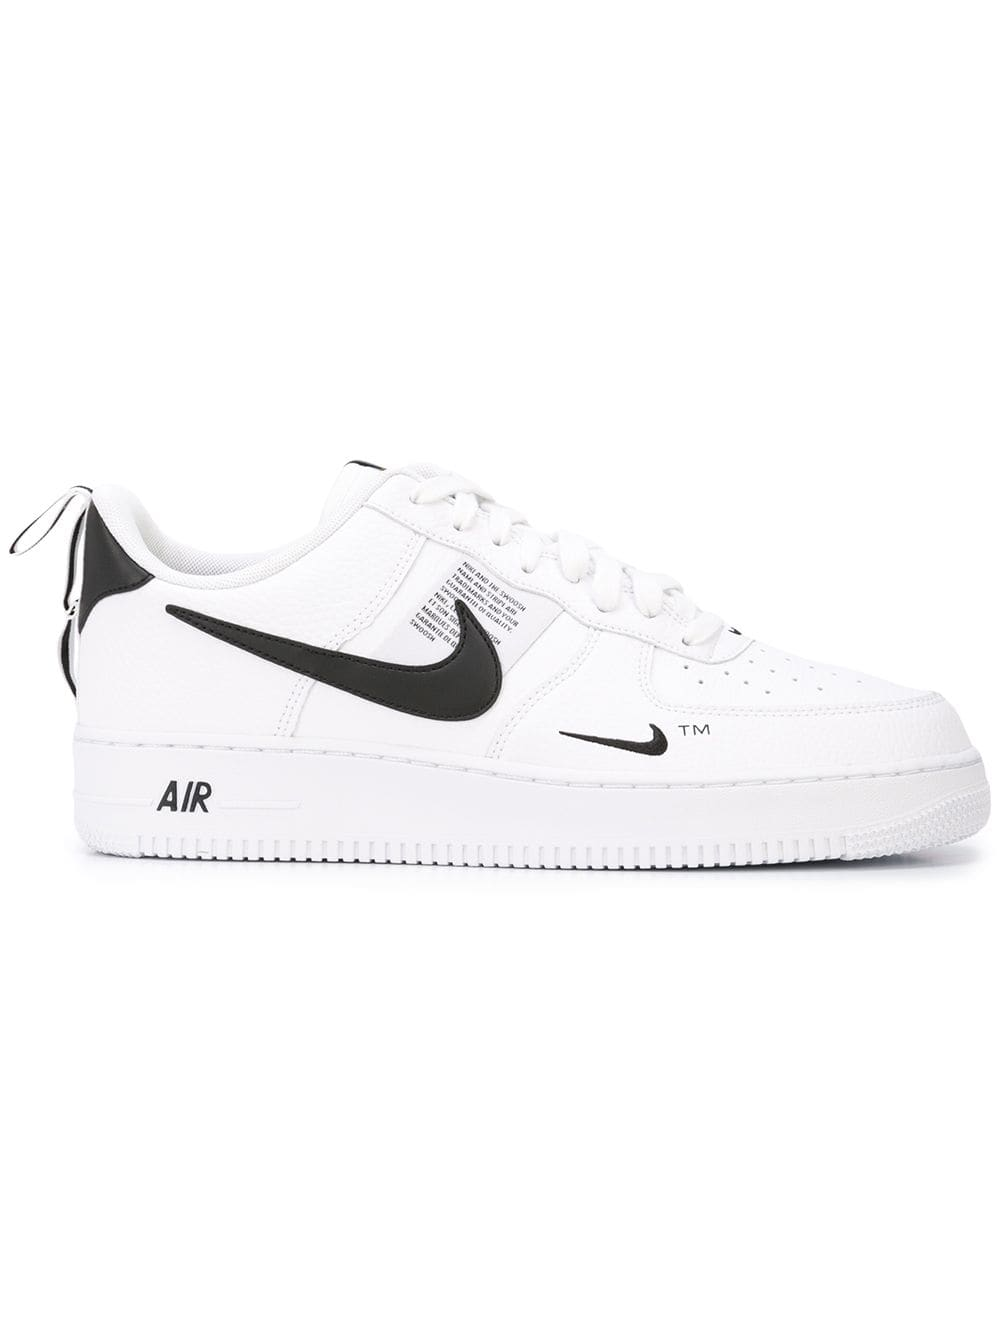 Nike Air Force 1  07 Lv8 sneakers - White - Glami.sk abcfb34d9d9